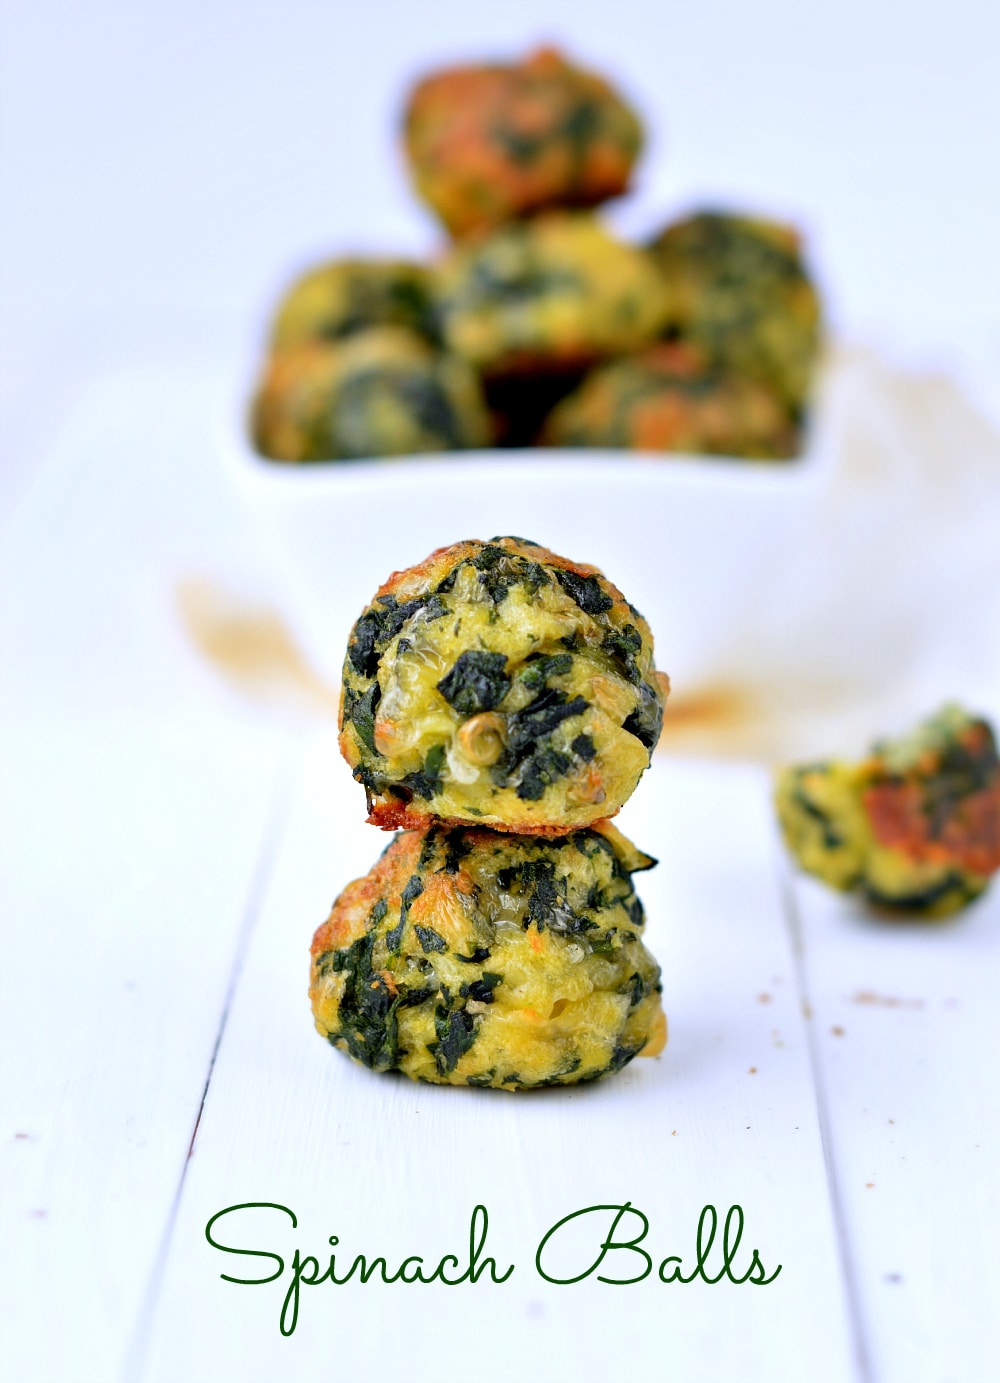 Spinach balls easy appetizer